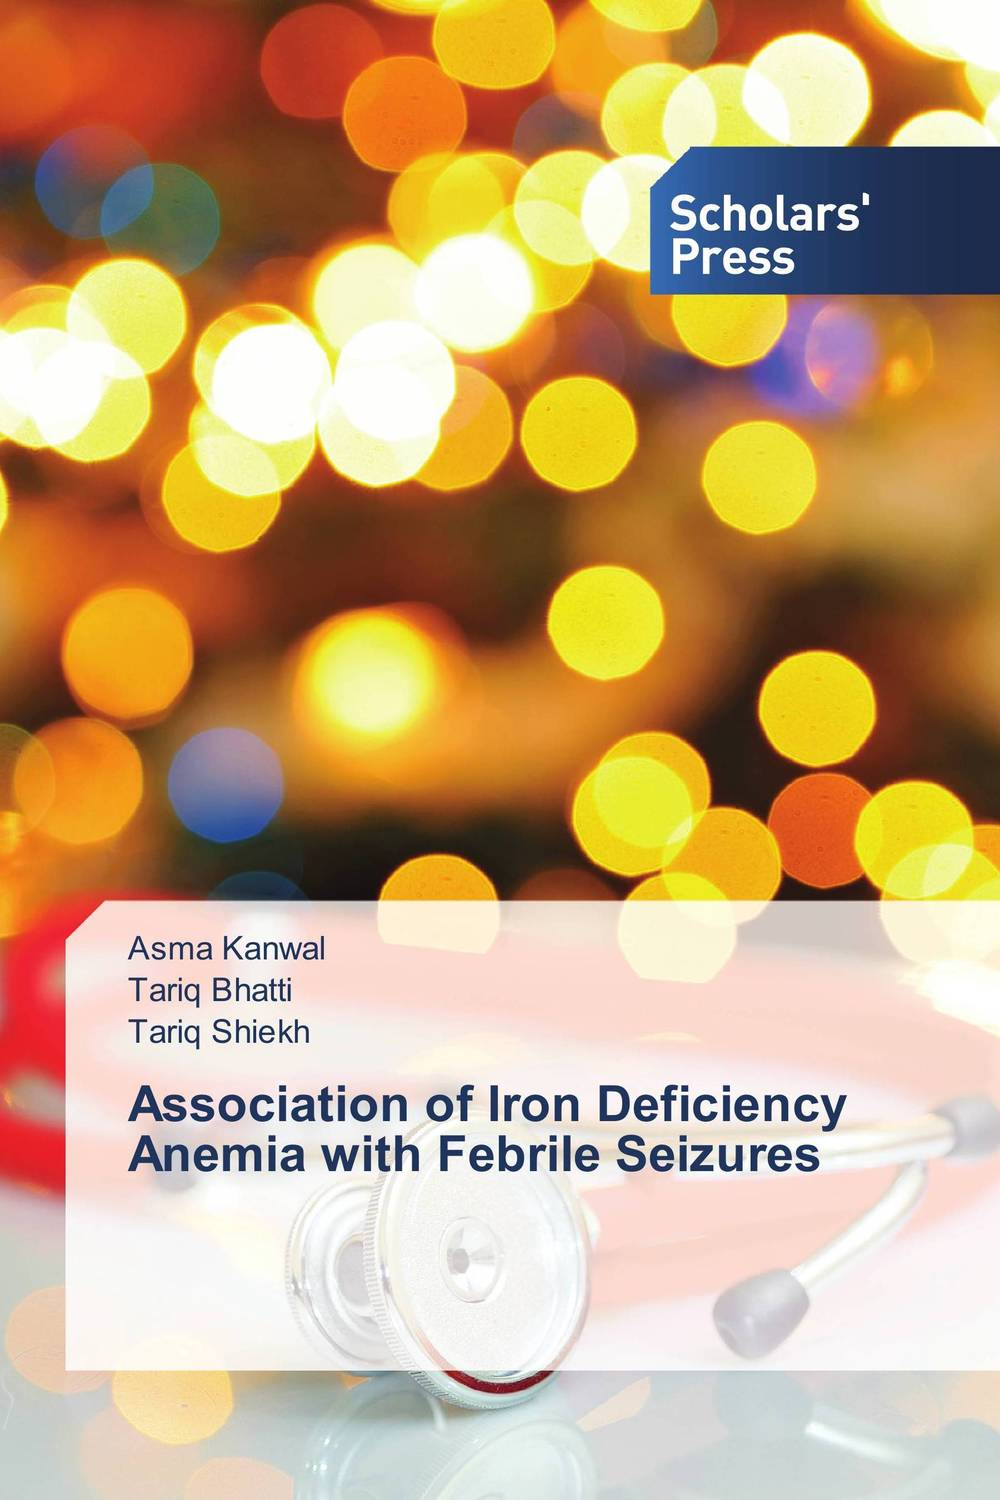 Association of Iron Deficiency Anemia with Febrile Seizures incidence of iron deficiency anemia in day scholar university girls